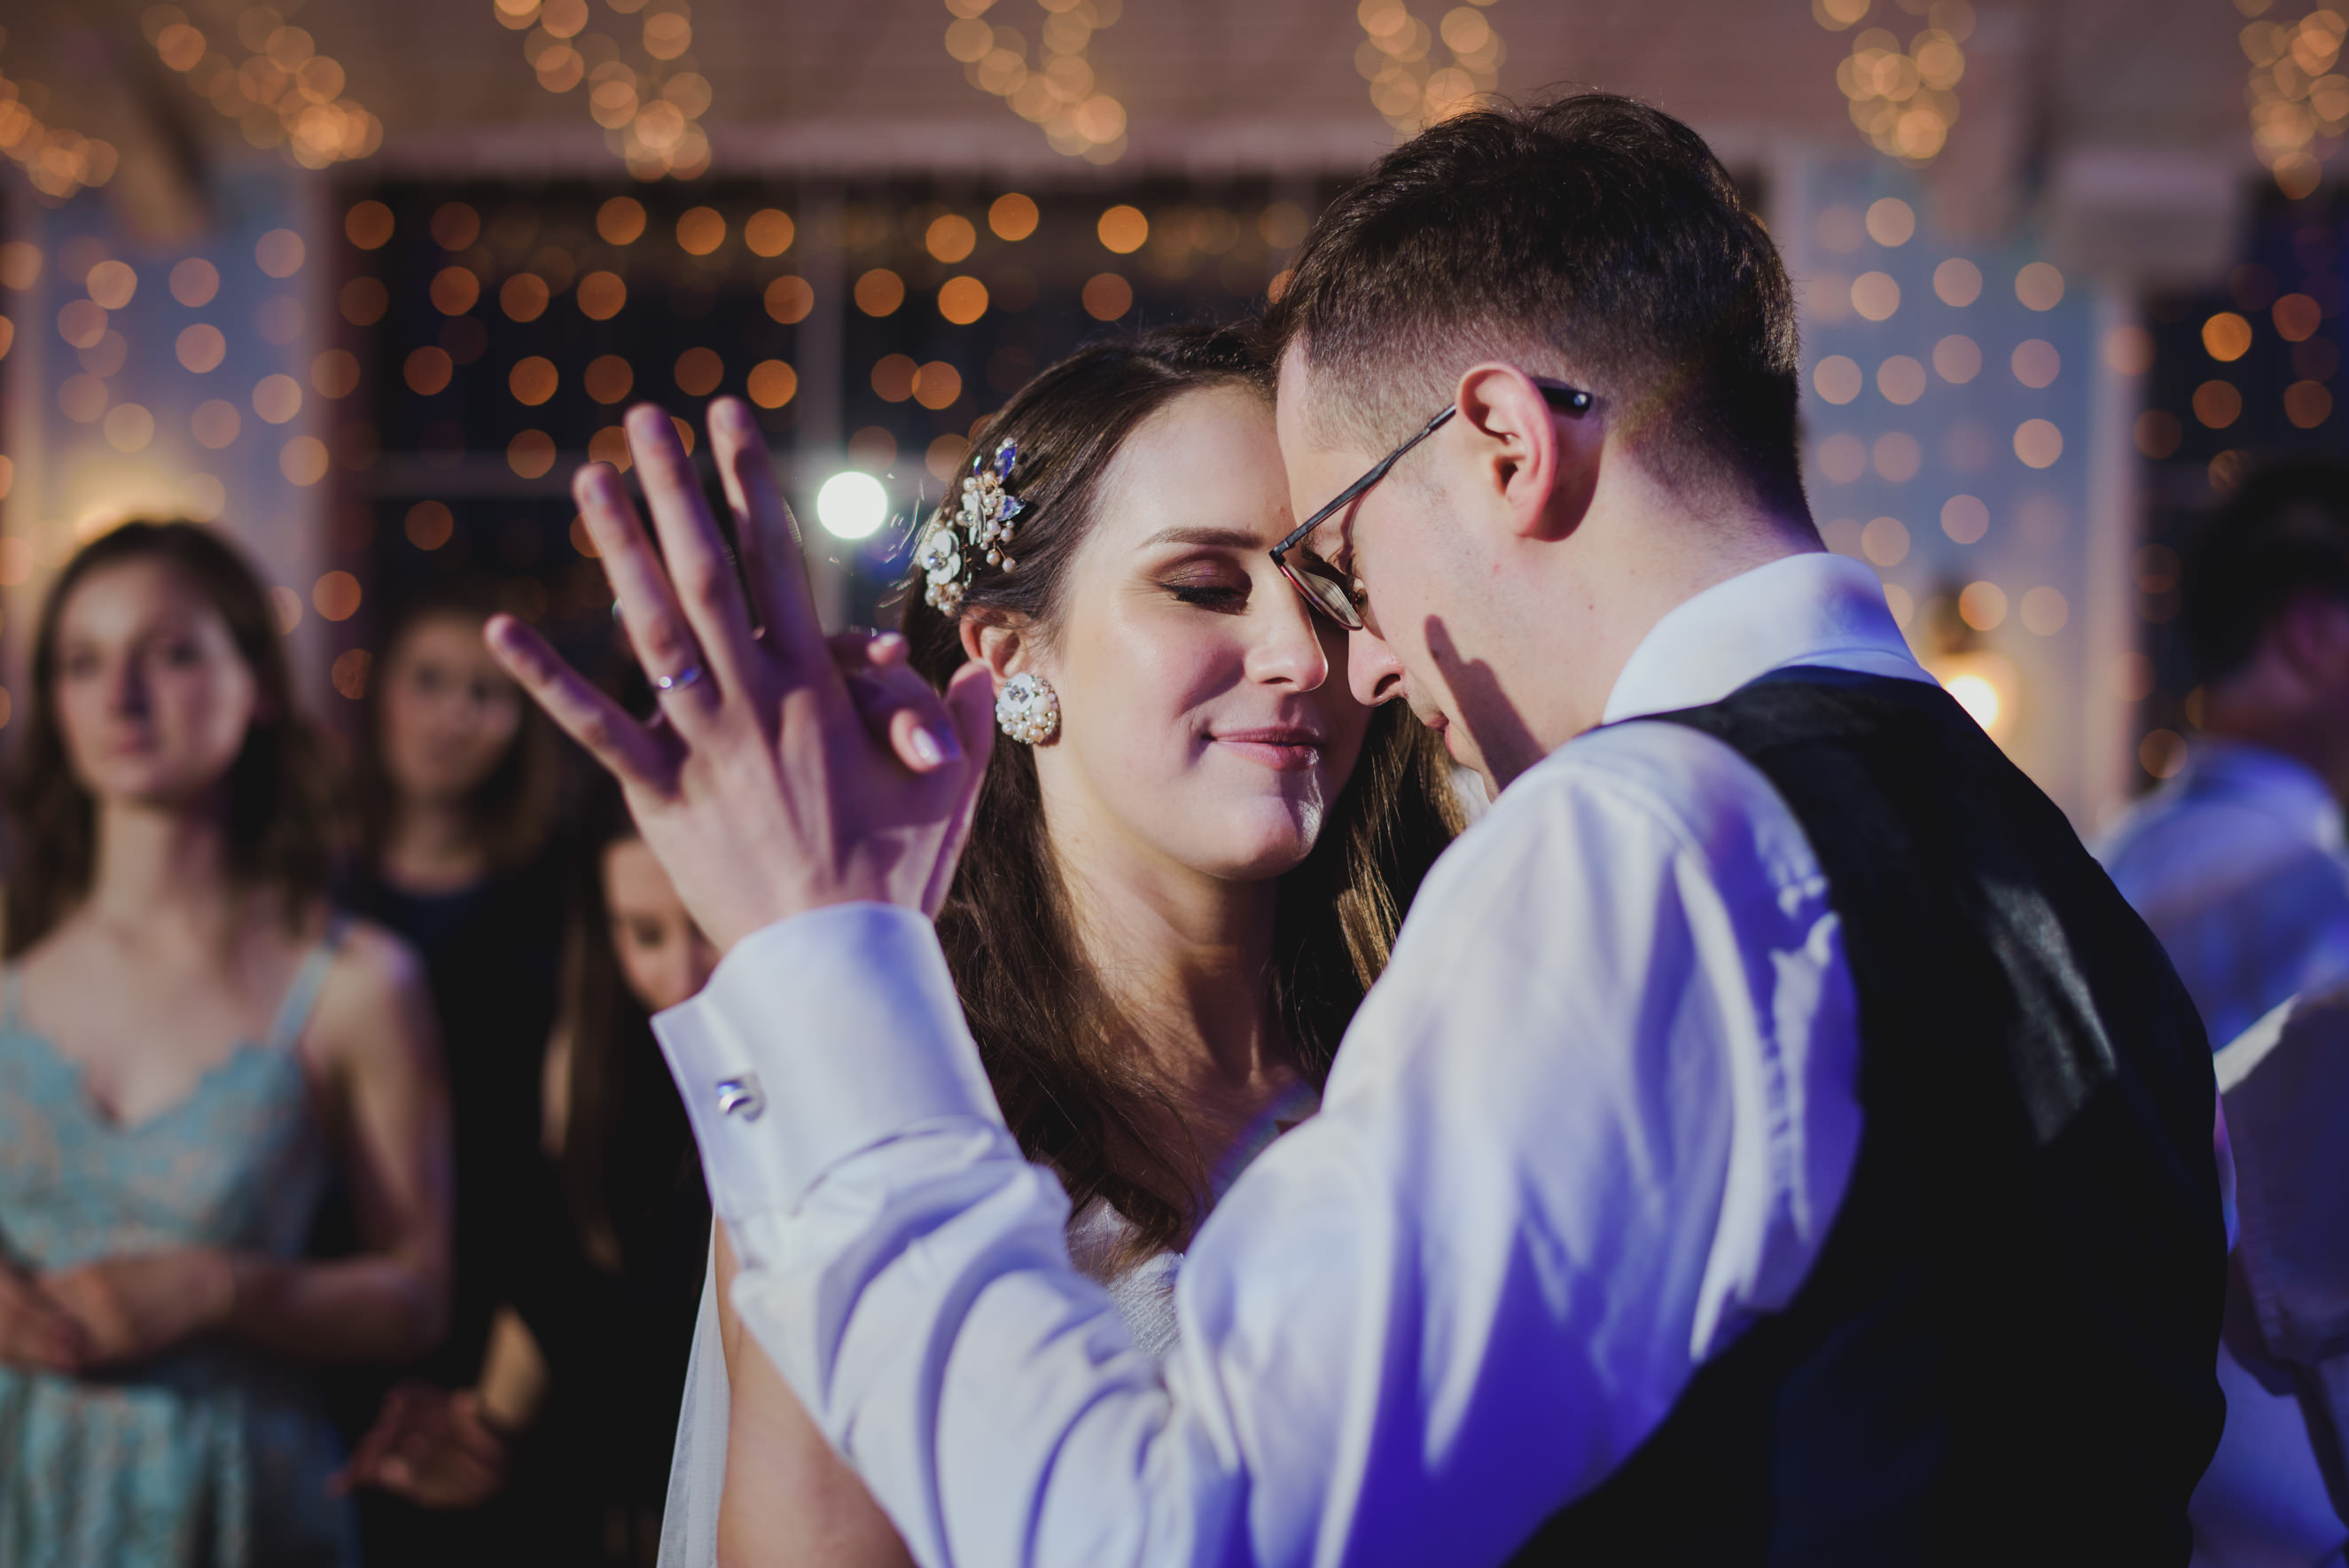 bride and groom dancing romantically to the music in the middle of the dance floor